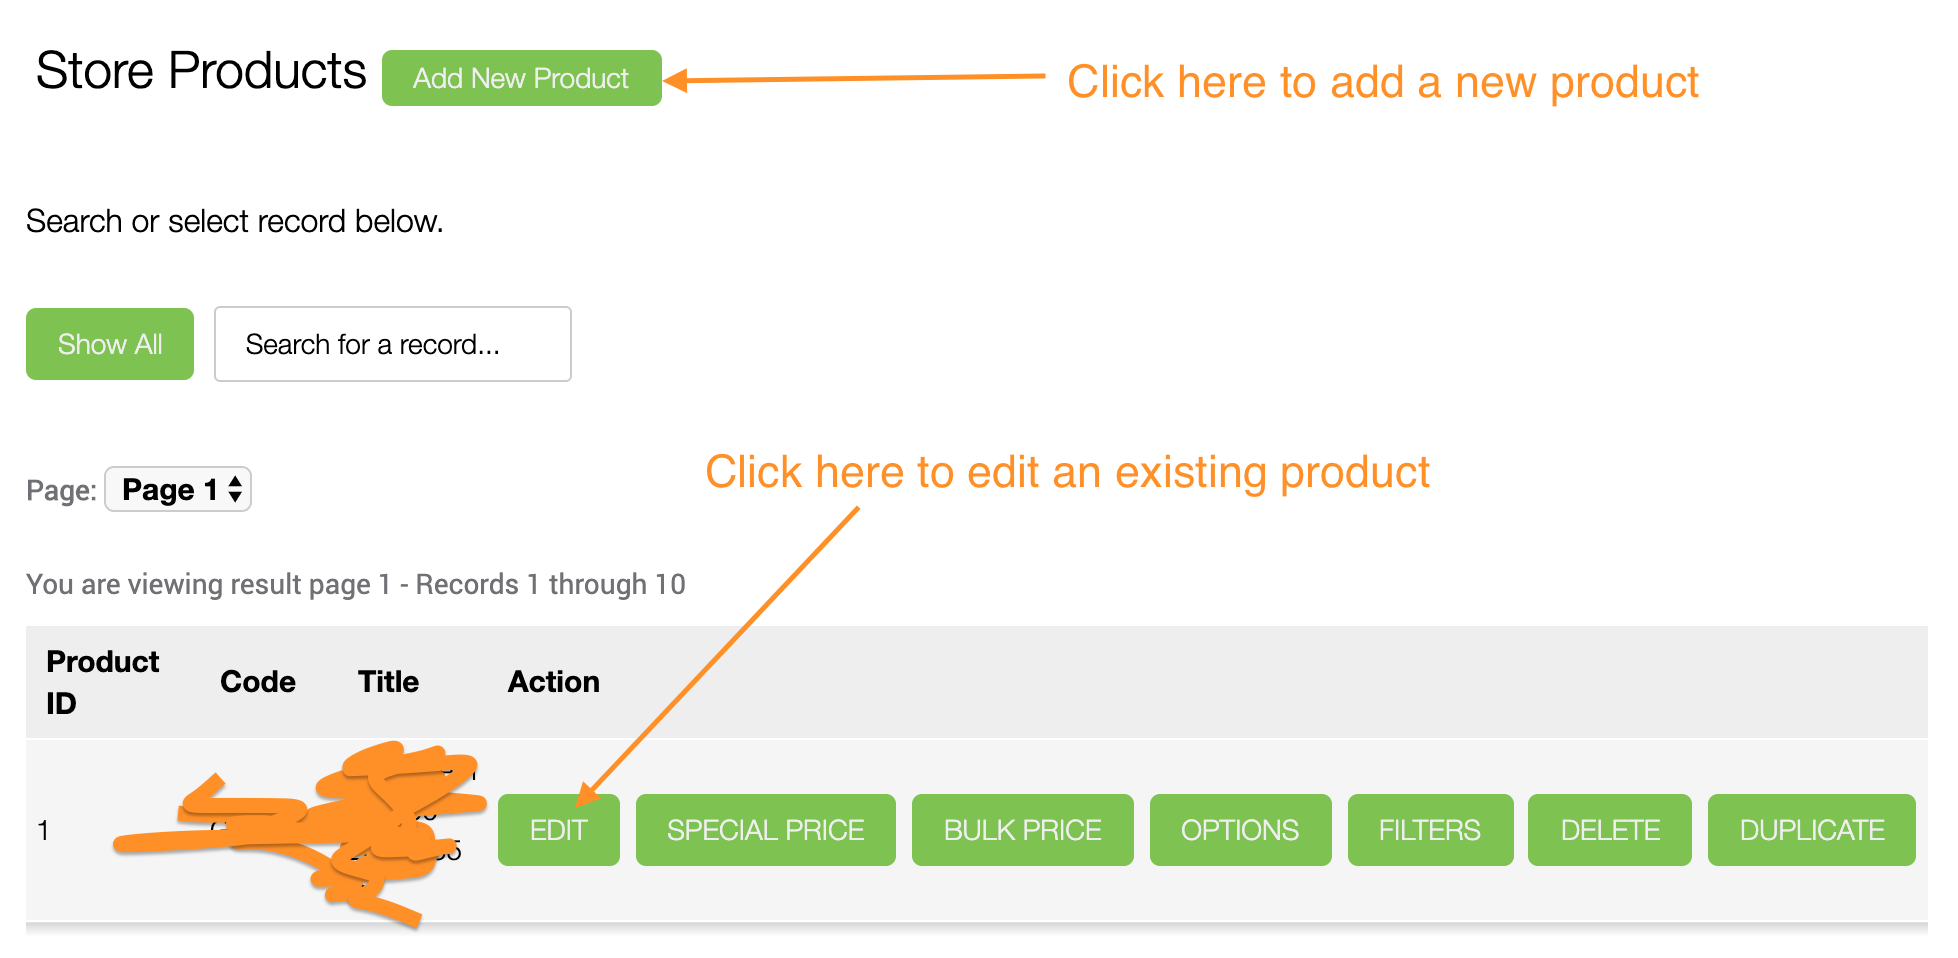 Store Module - Add a New Product